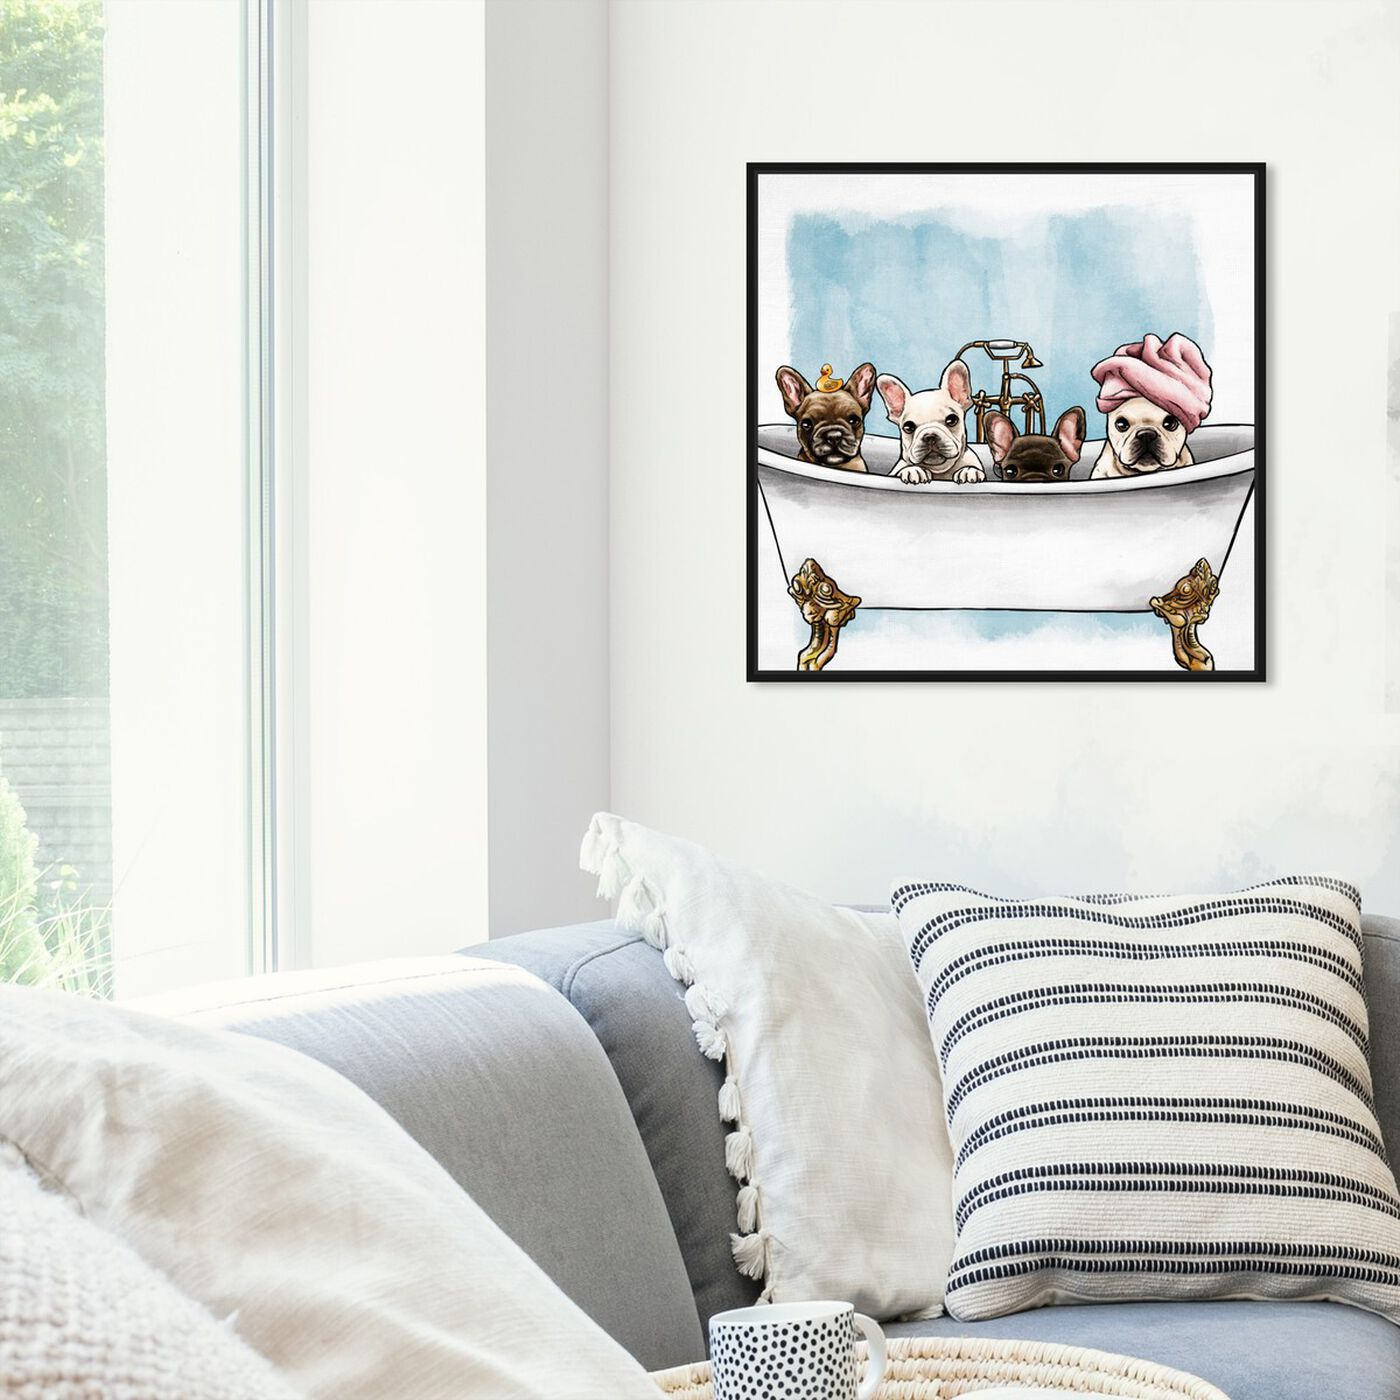 Hanging view of Frenchies In The Tub featuring animals and dogs and puppies art.